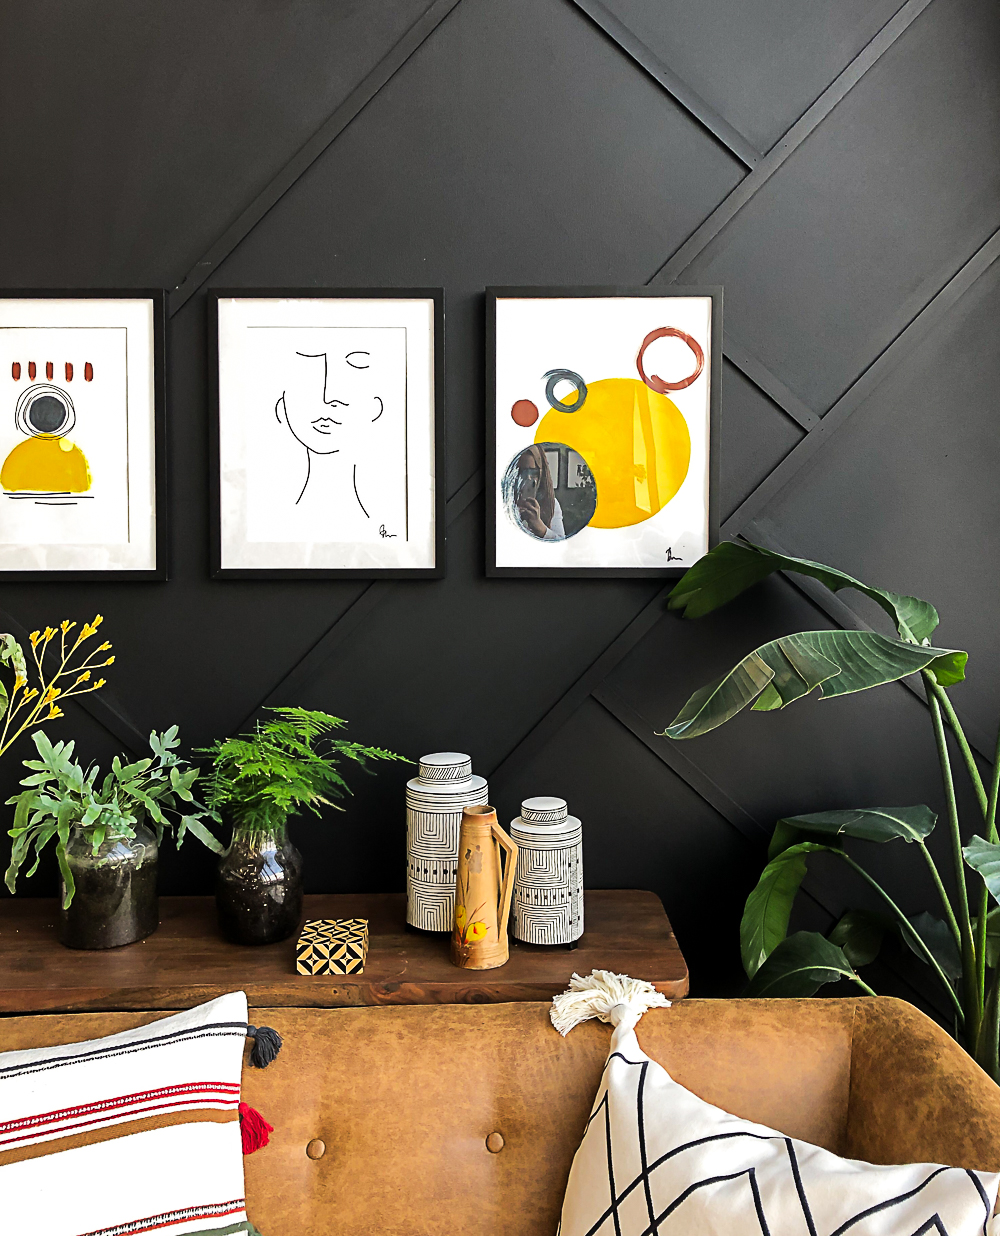 Close up image of 3 abstract framed images on the geometric paneled black wall / grillo designs